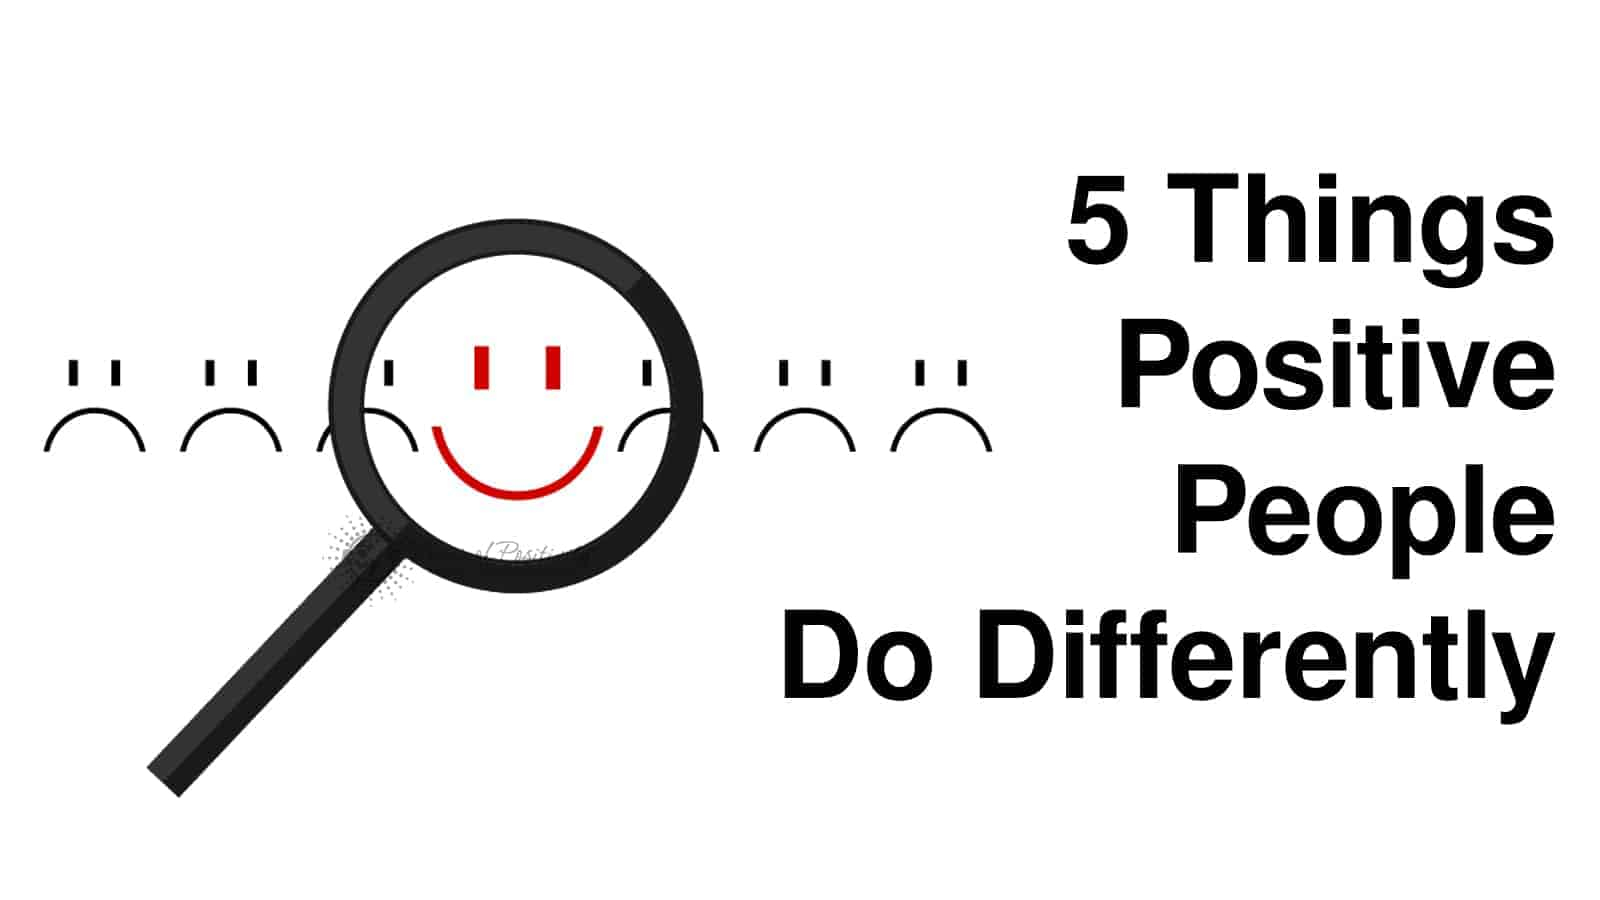 5 Things Positive People Do Differently